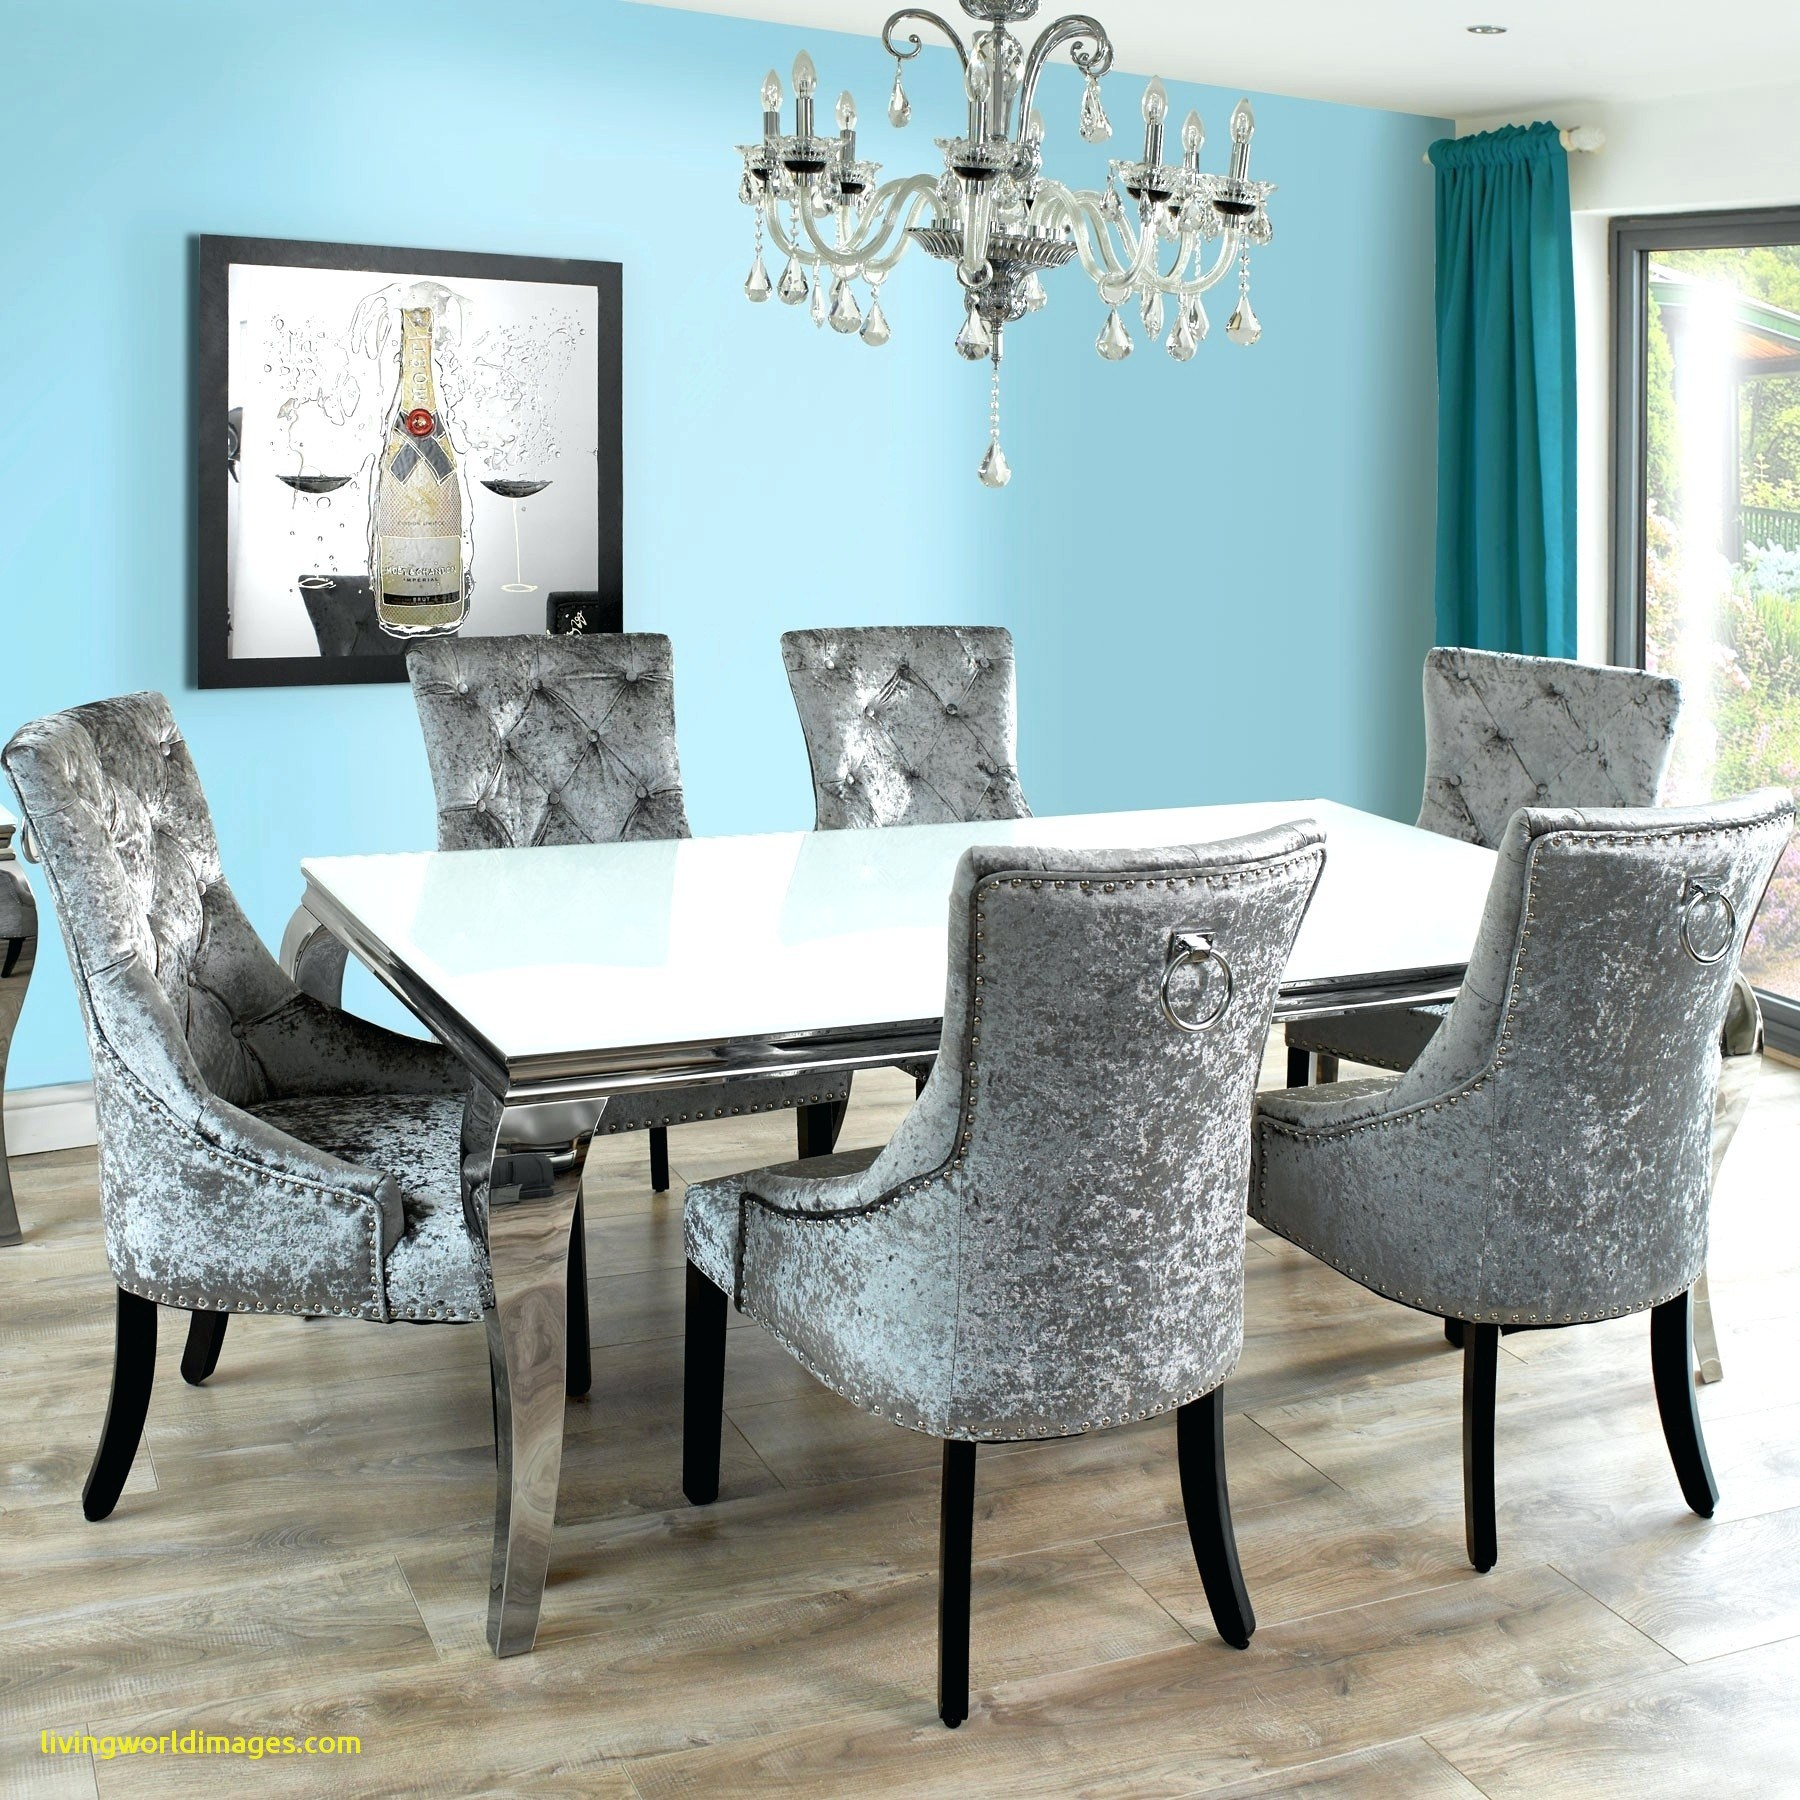 ashley furniture accent chairs best dining modern luxury gray living room sets table with pier one stools baroque console iron bedside home goods small designer coffee tables